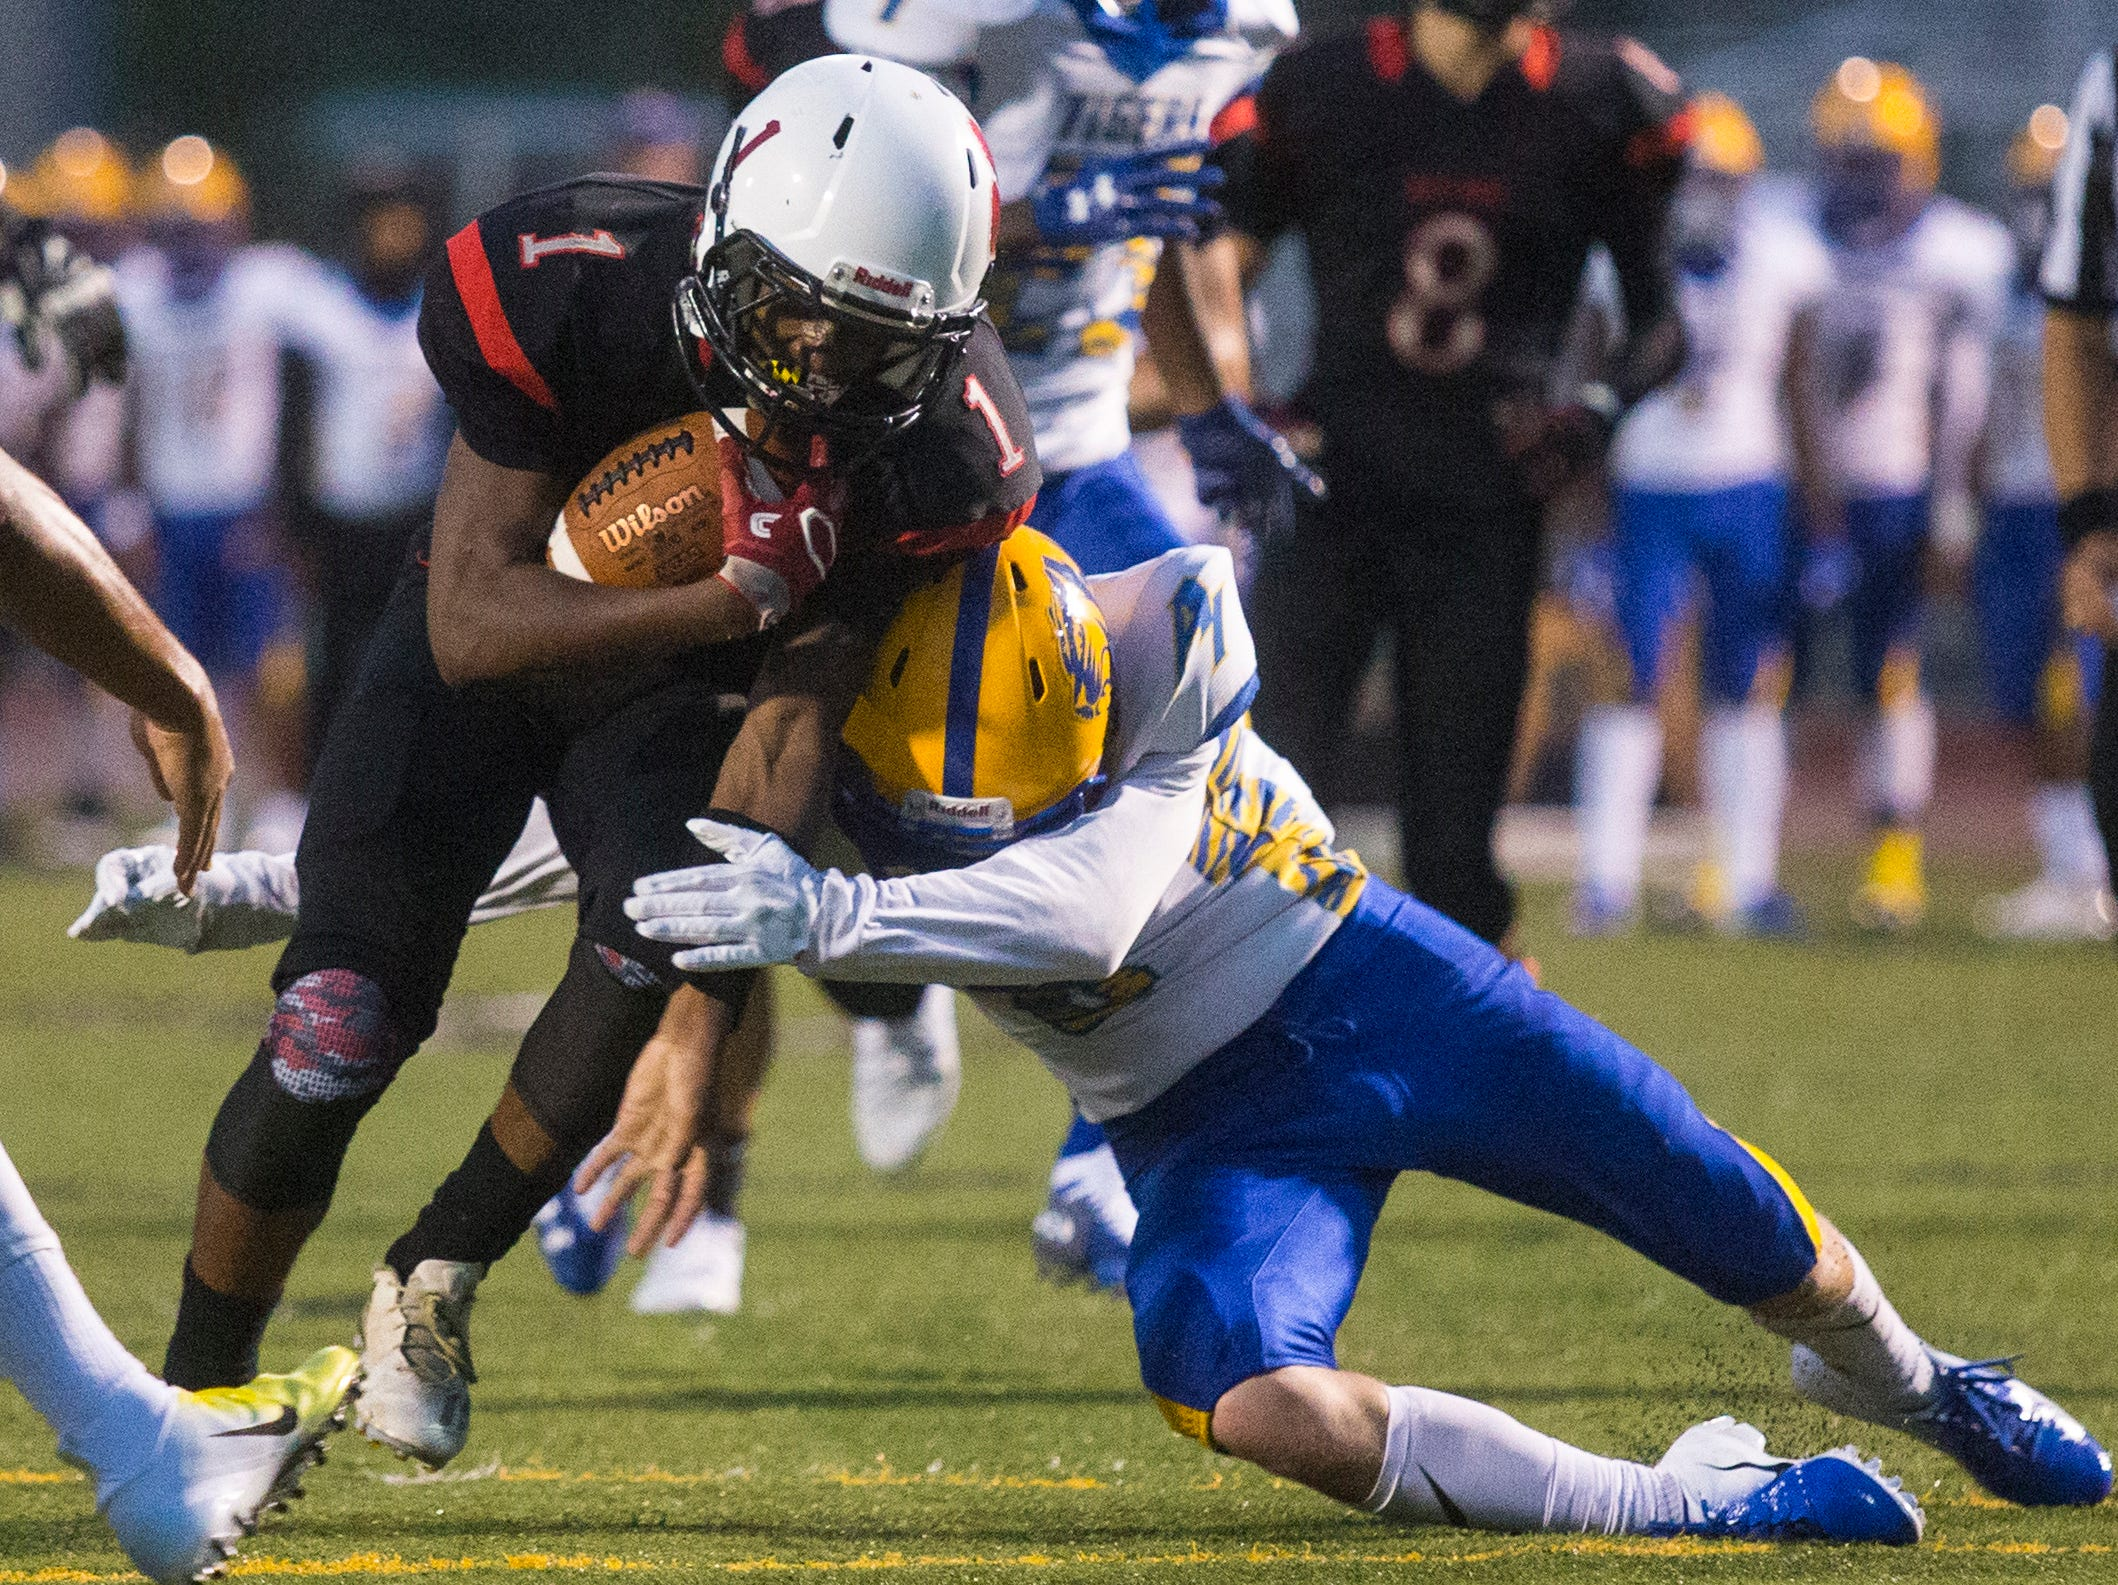 Polytech's Donell Hooker (1) pushes his way through the A.I. du Pont defense Monday night at Appoquinimink High School.